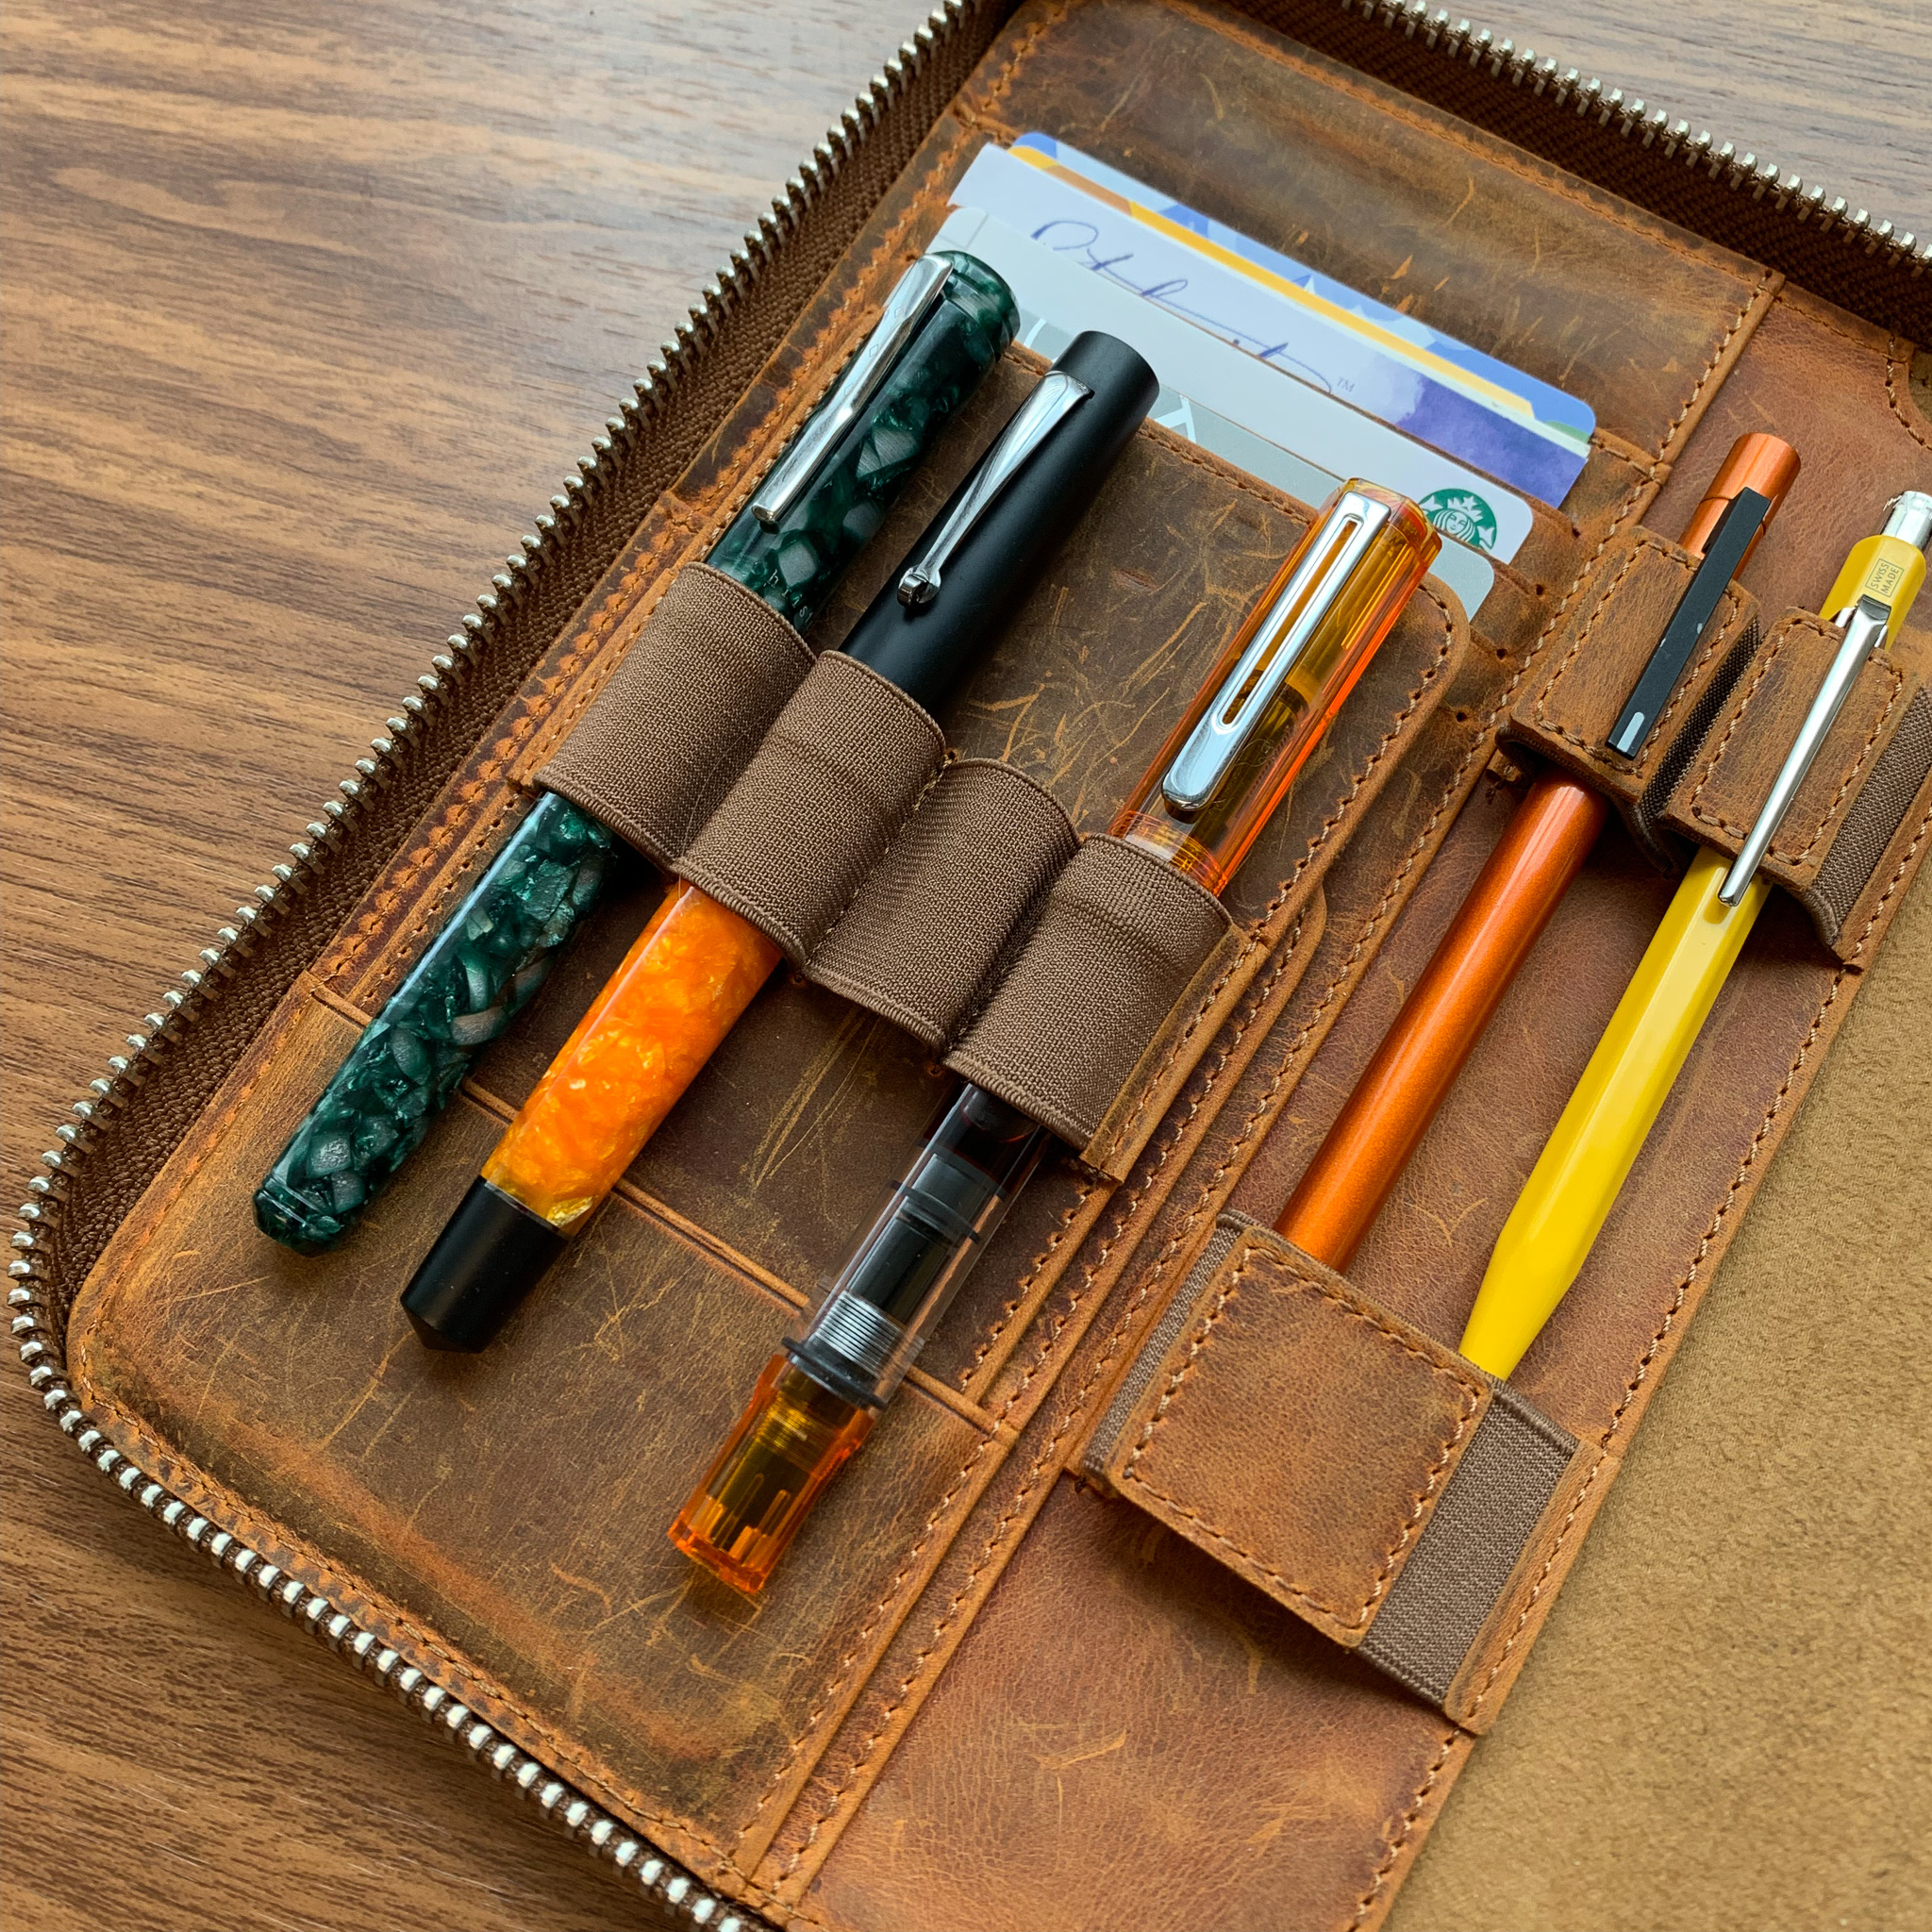 One of these pens has never been reviewed on The Gentleman Stationer. A sign of things to come?